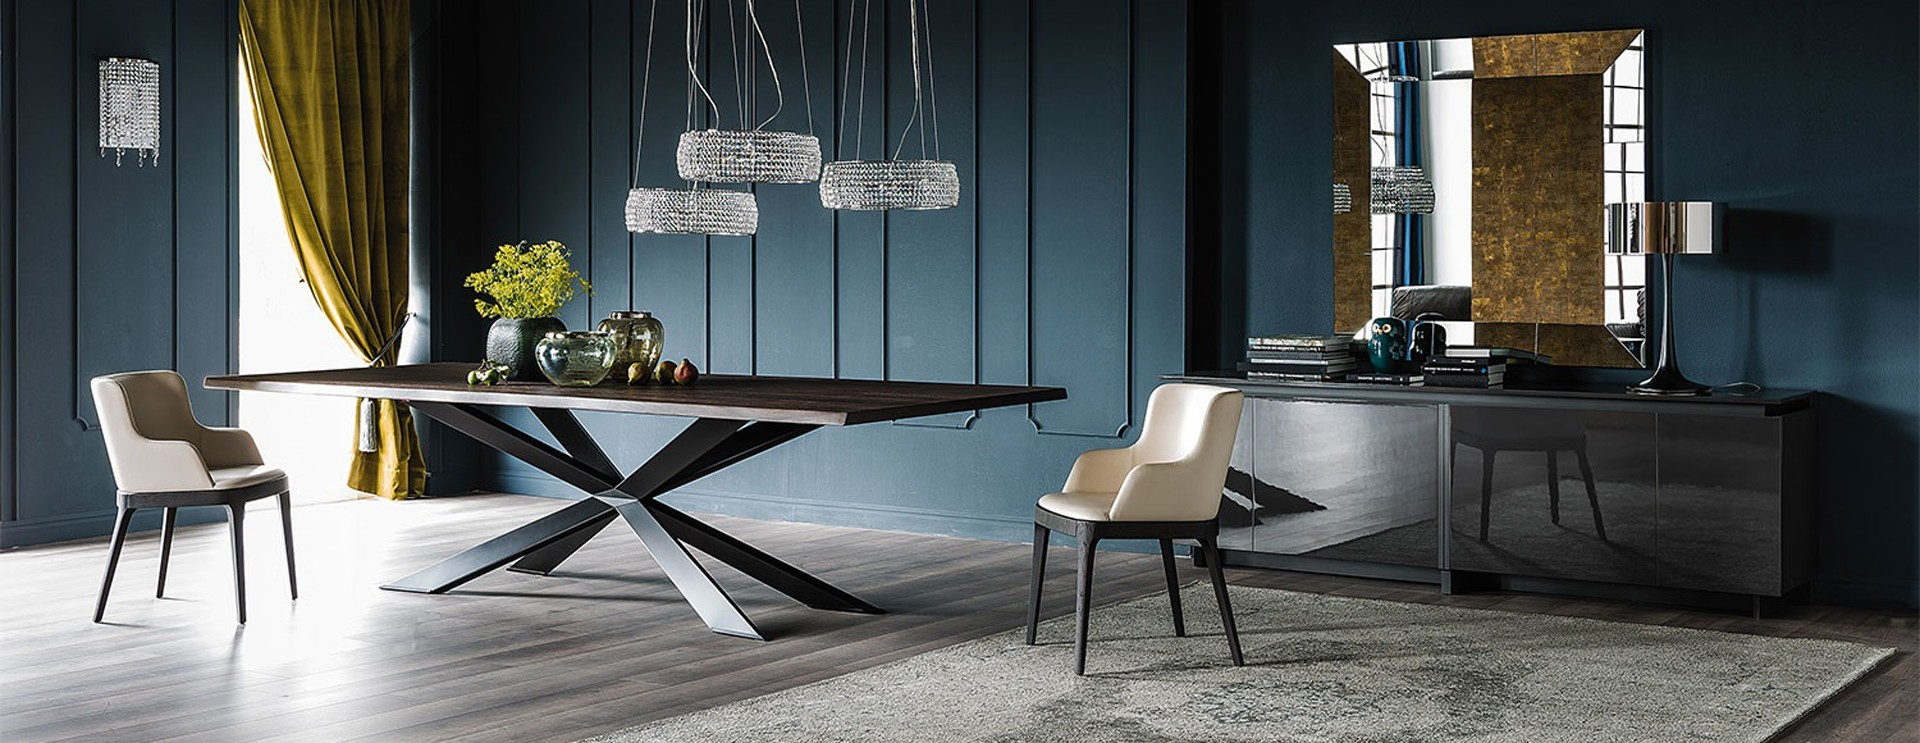 Milan Show Room Are Available Cattelan